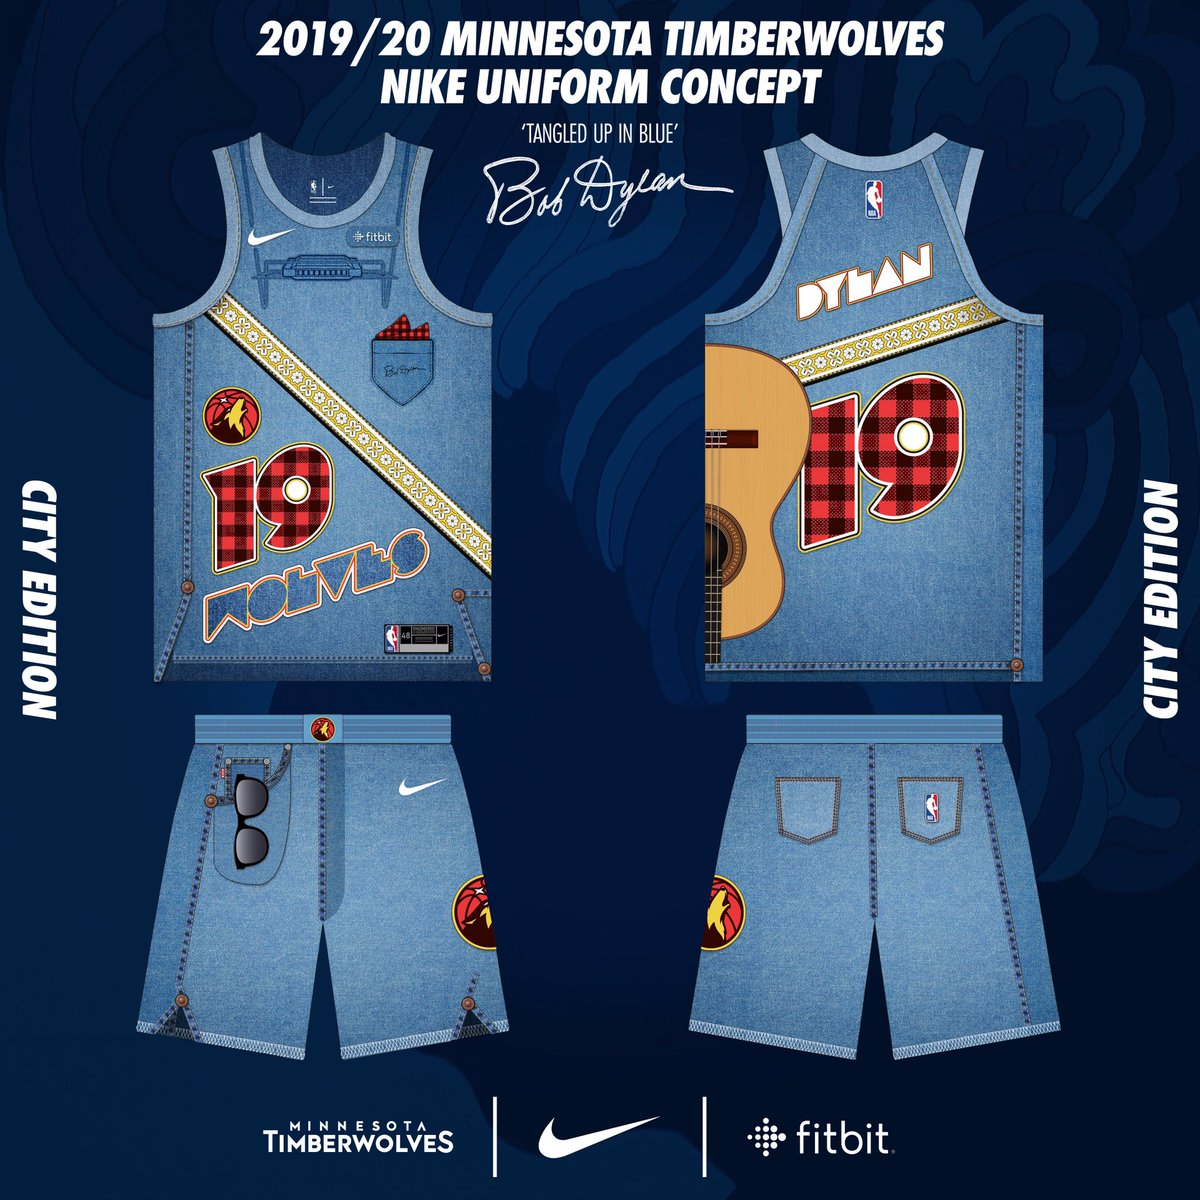 Timberwolves On Twitter The Jerseys They Are A Changin